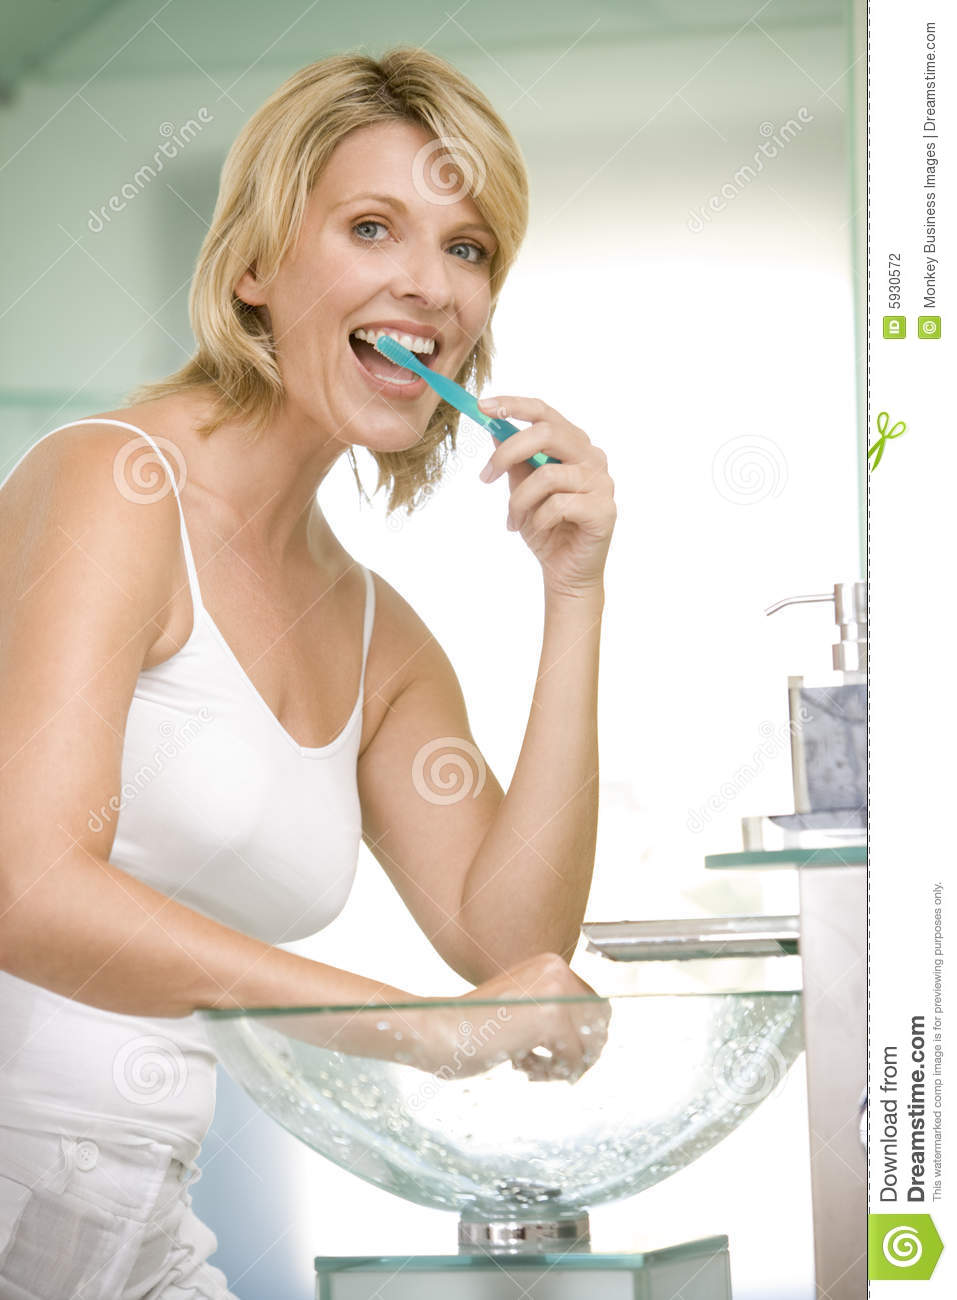 Woman In Bathroom Brushing Teeth Stock Photography - Image ...